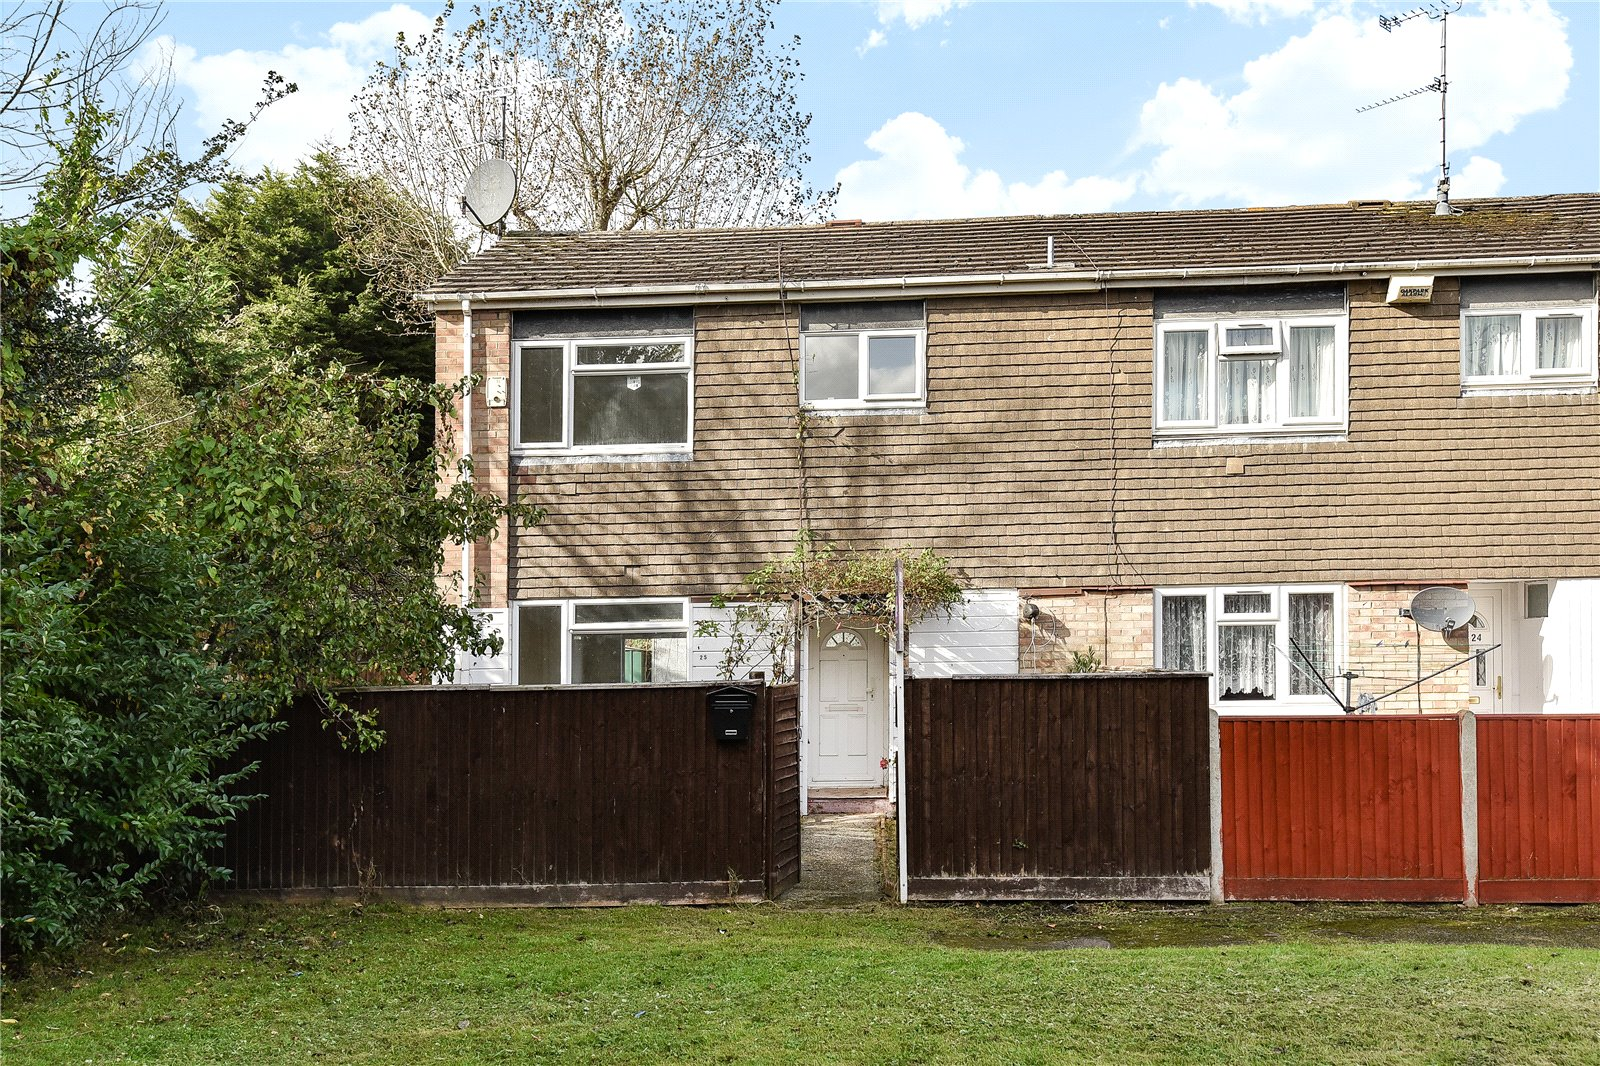 3 Bedrooms End Of Terrace House for sale in Hearsey Gardens, Blackwater, Camberley, GU17